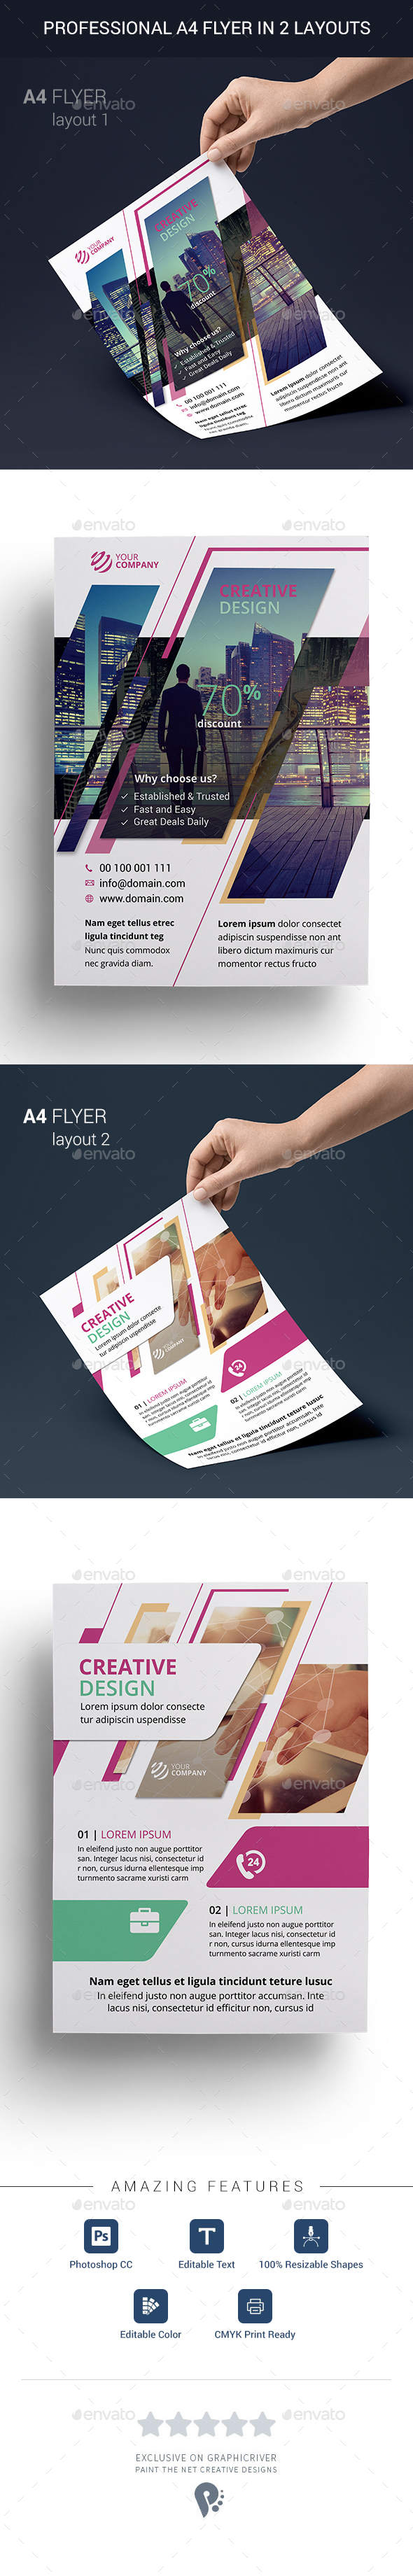 Professional Multi-purpose A4 Flyer in 2 Layouts - Corporate Flyers